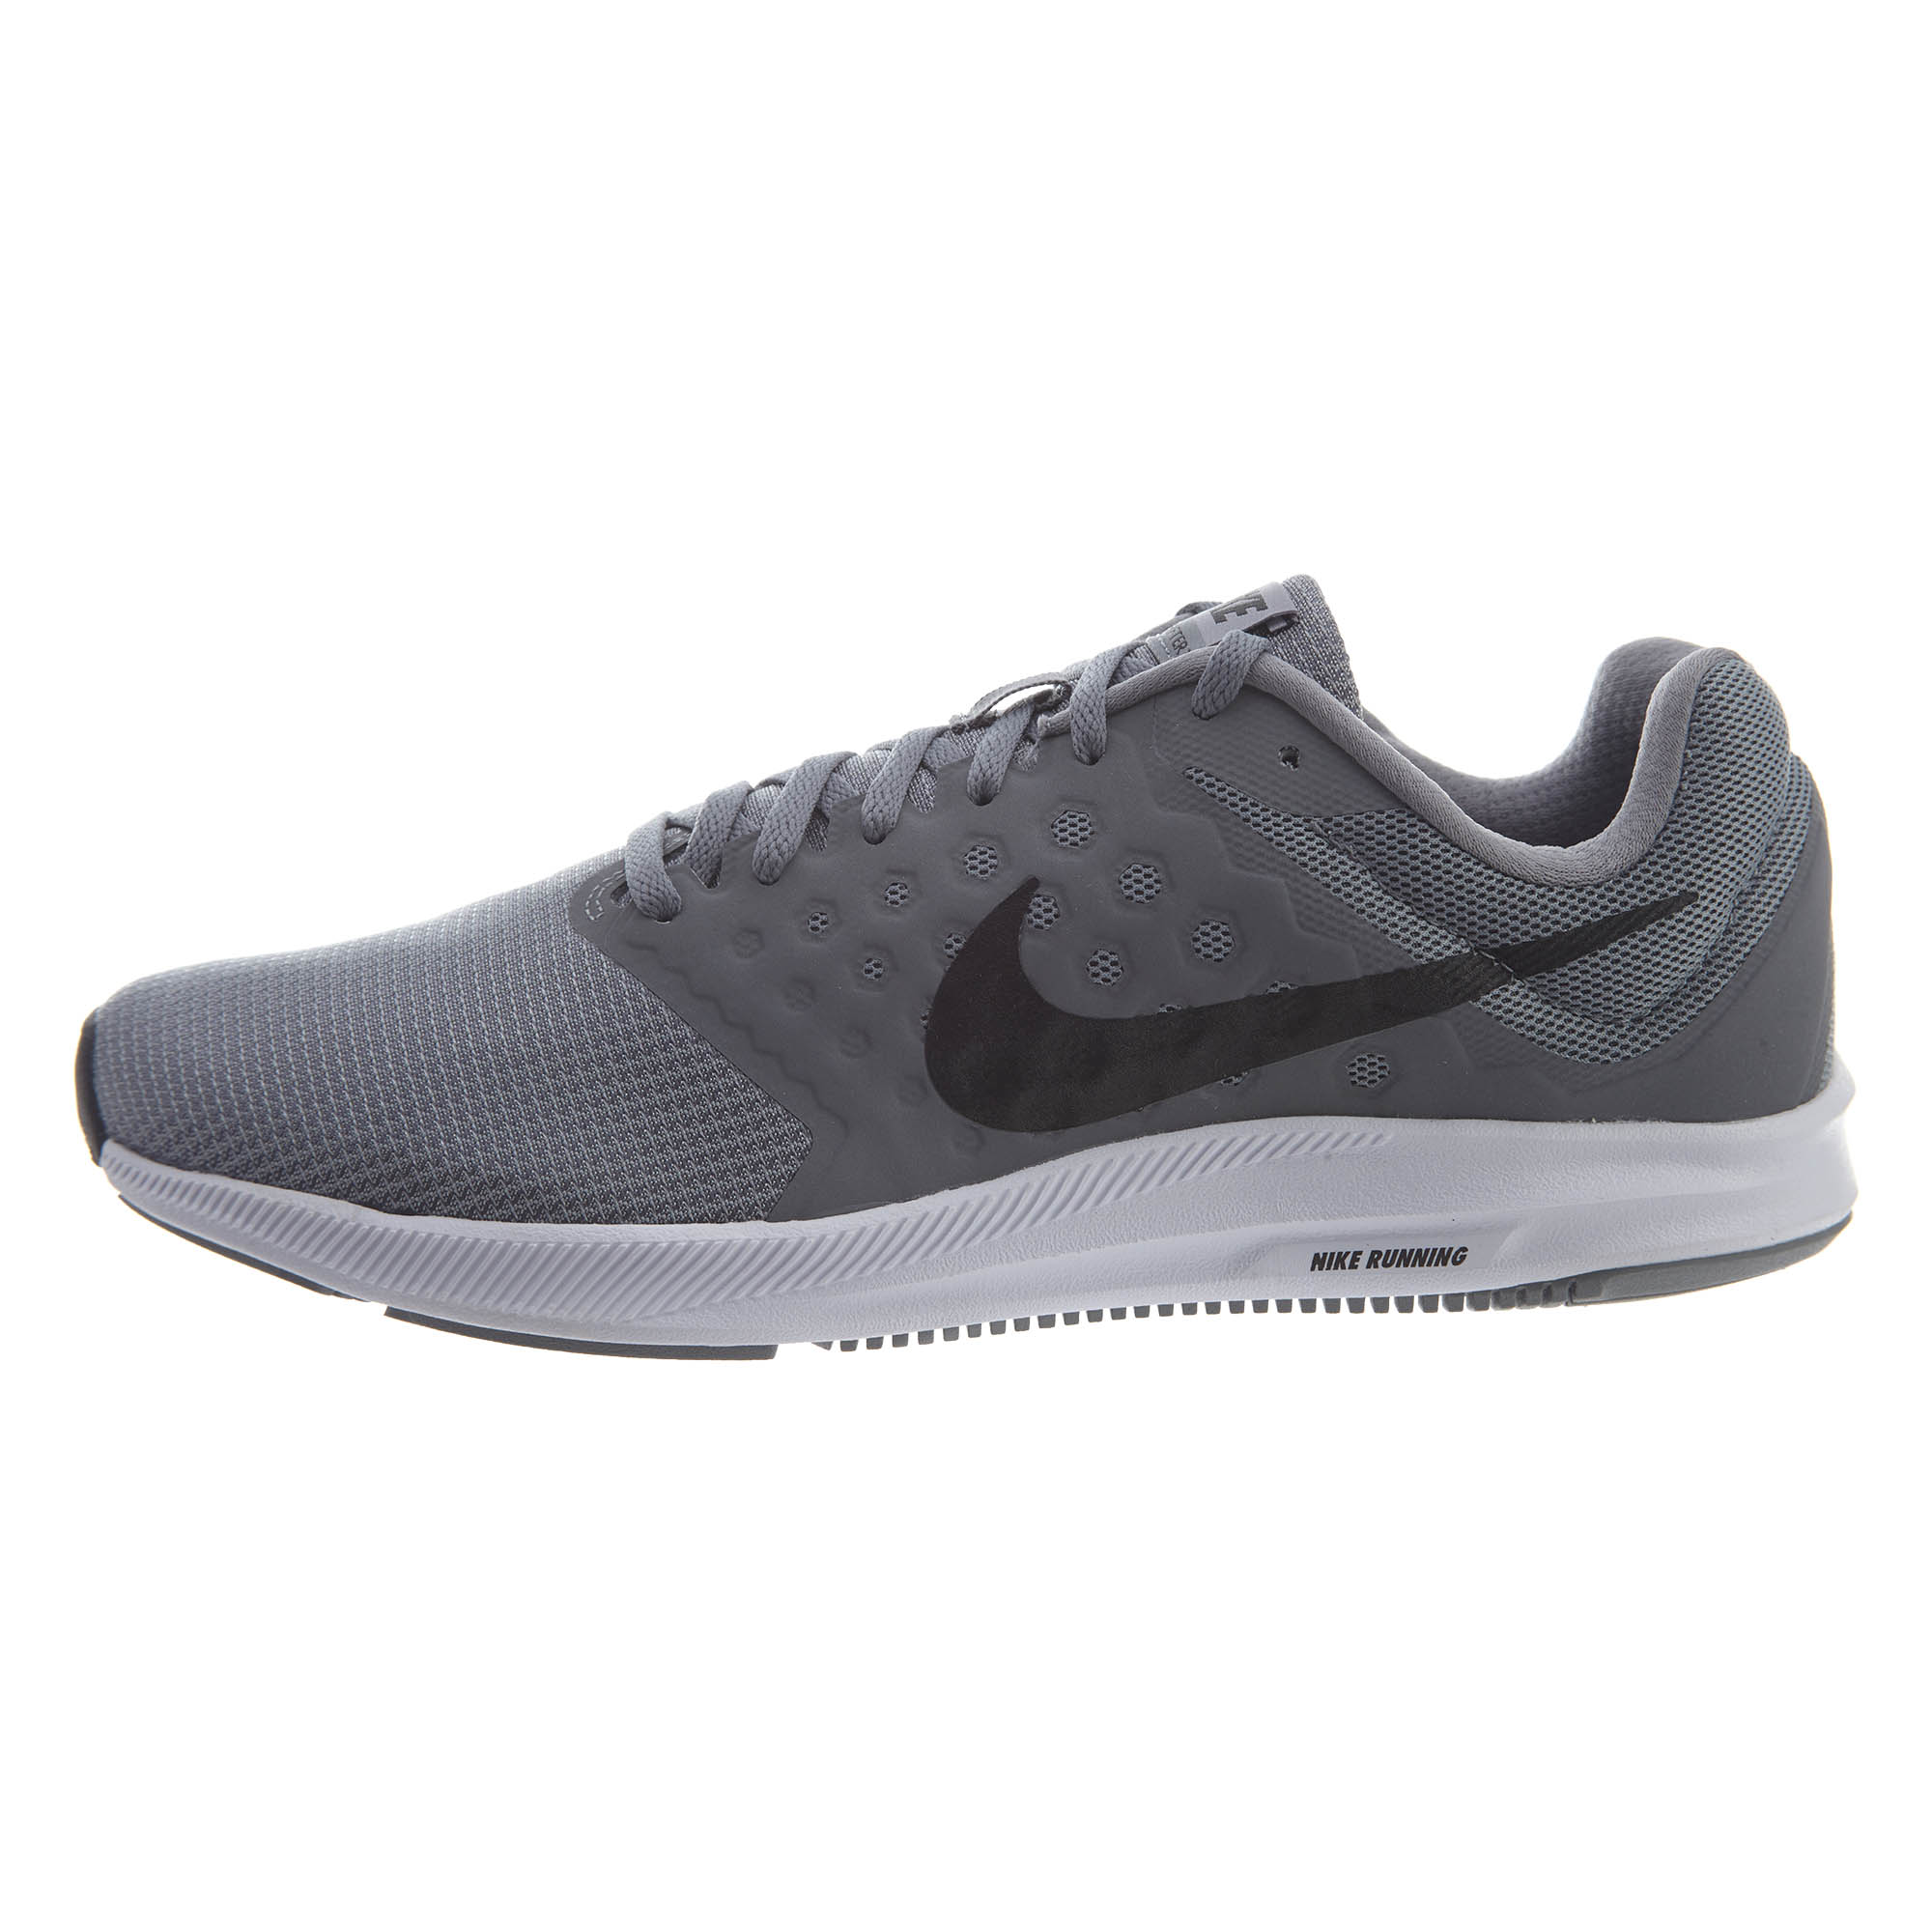 4aa8aacaad3b Details about Nike Mens Downshifter 7 Running Shoes 852459-009